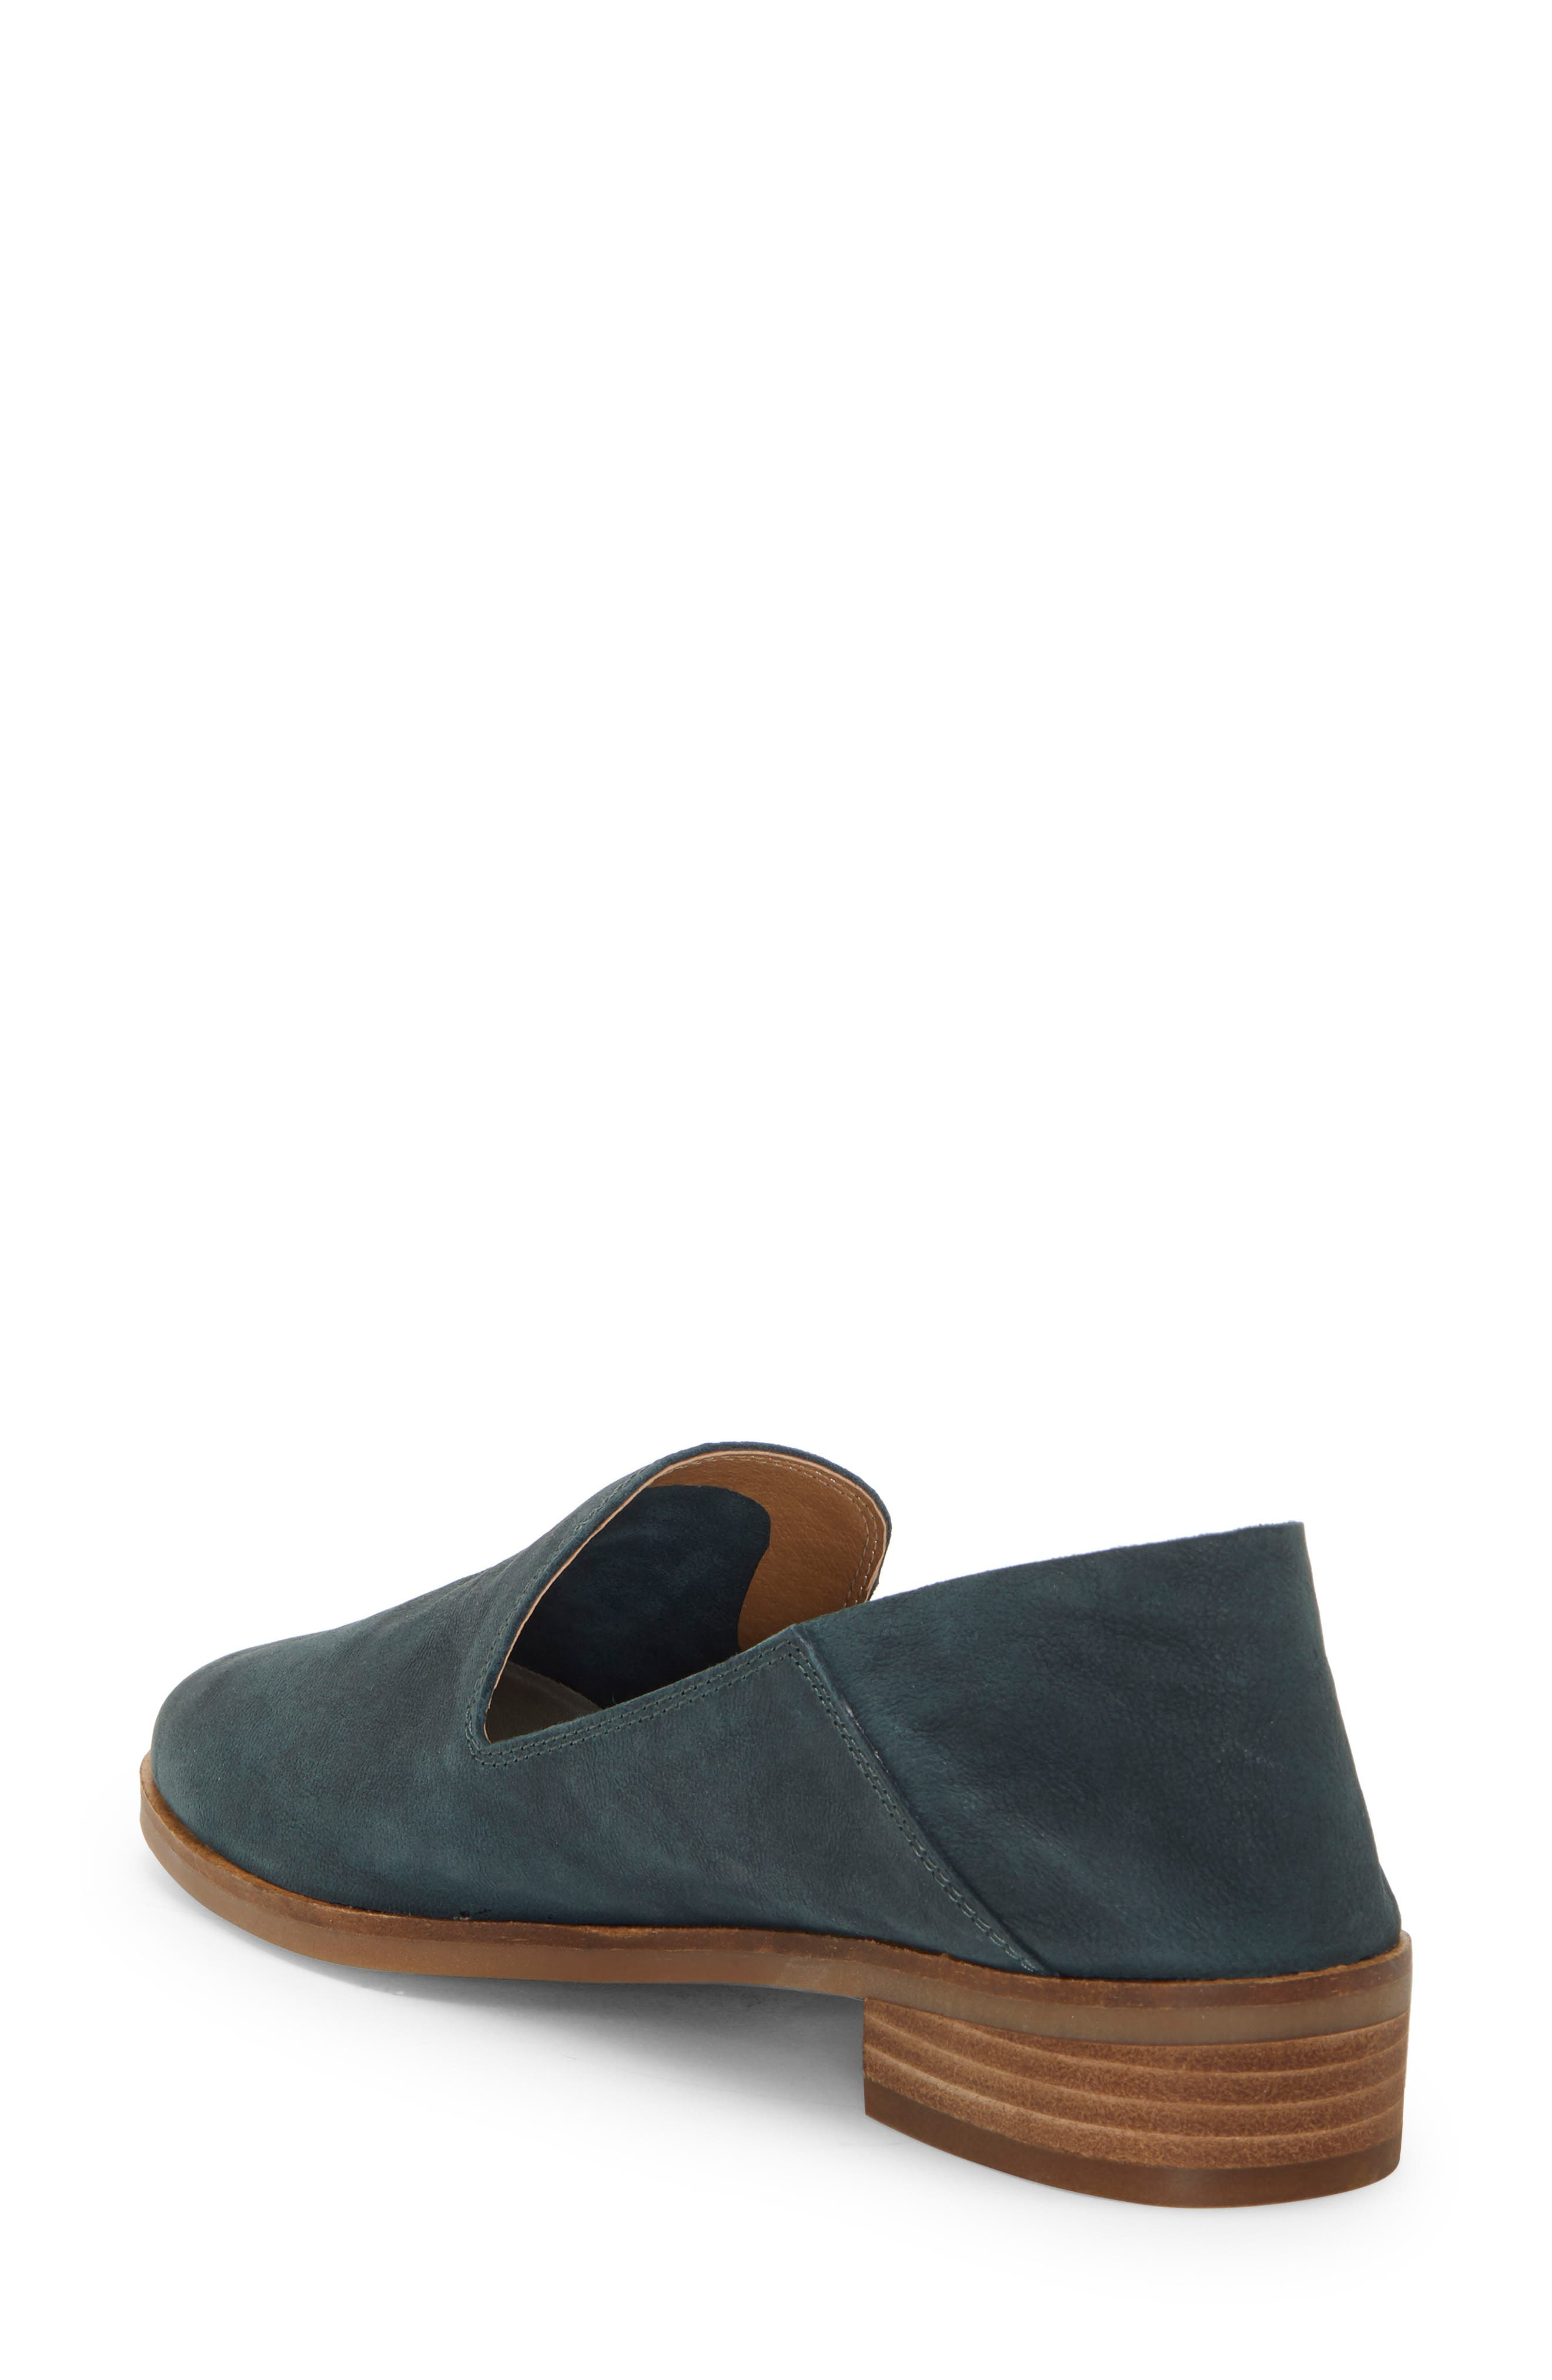 LUCKY BRAND, Cahill Flat, Alternate thumbnail 3, color, KELP LEATHER